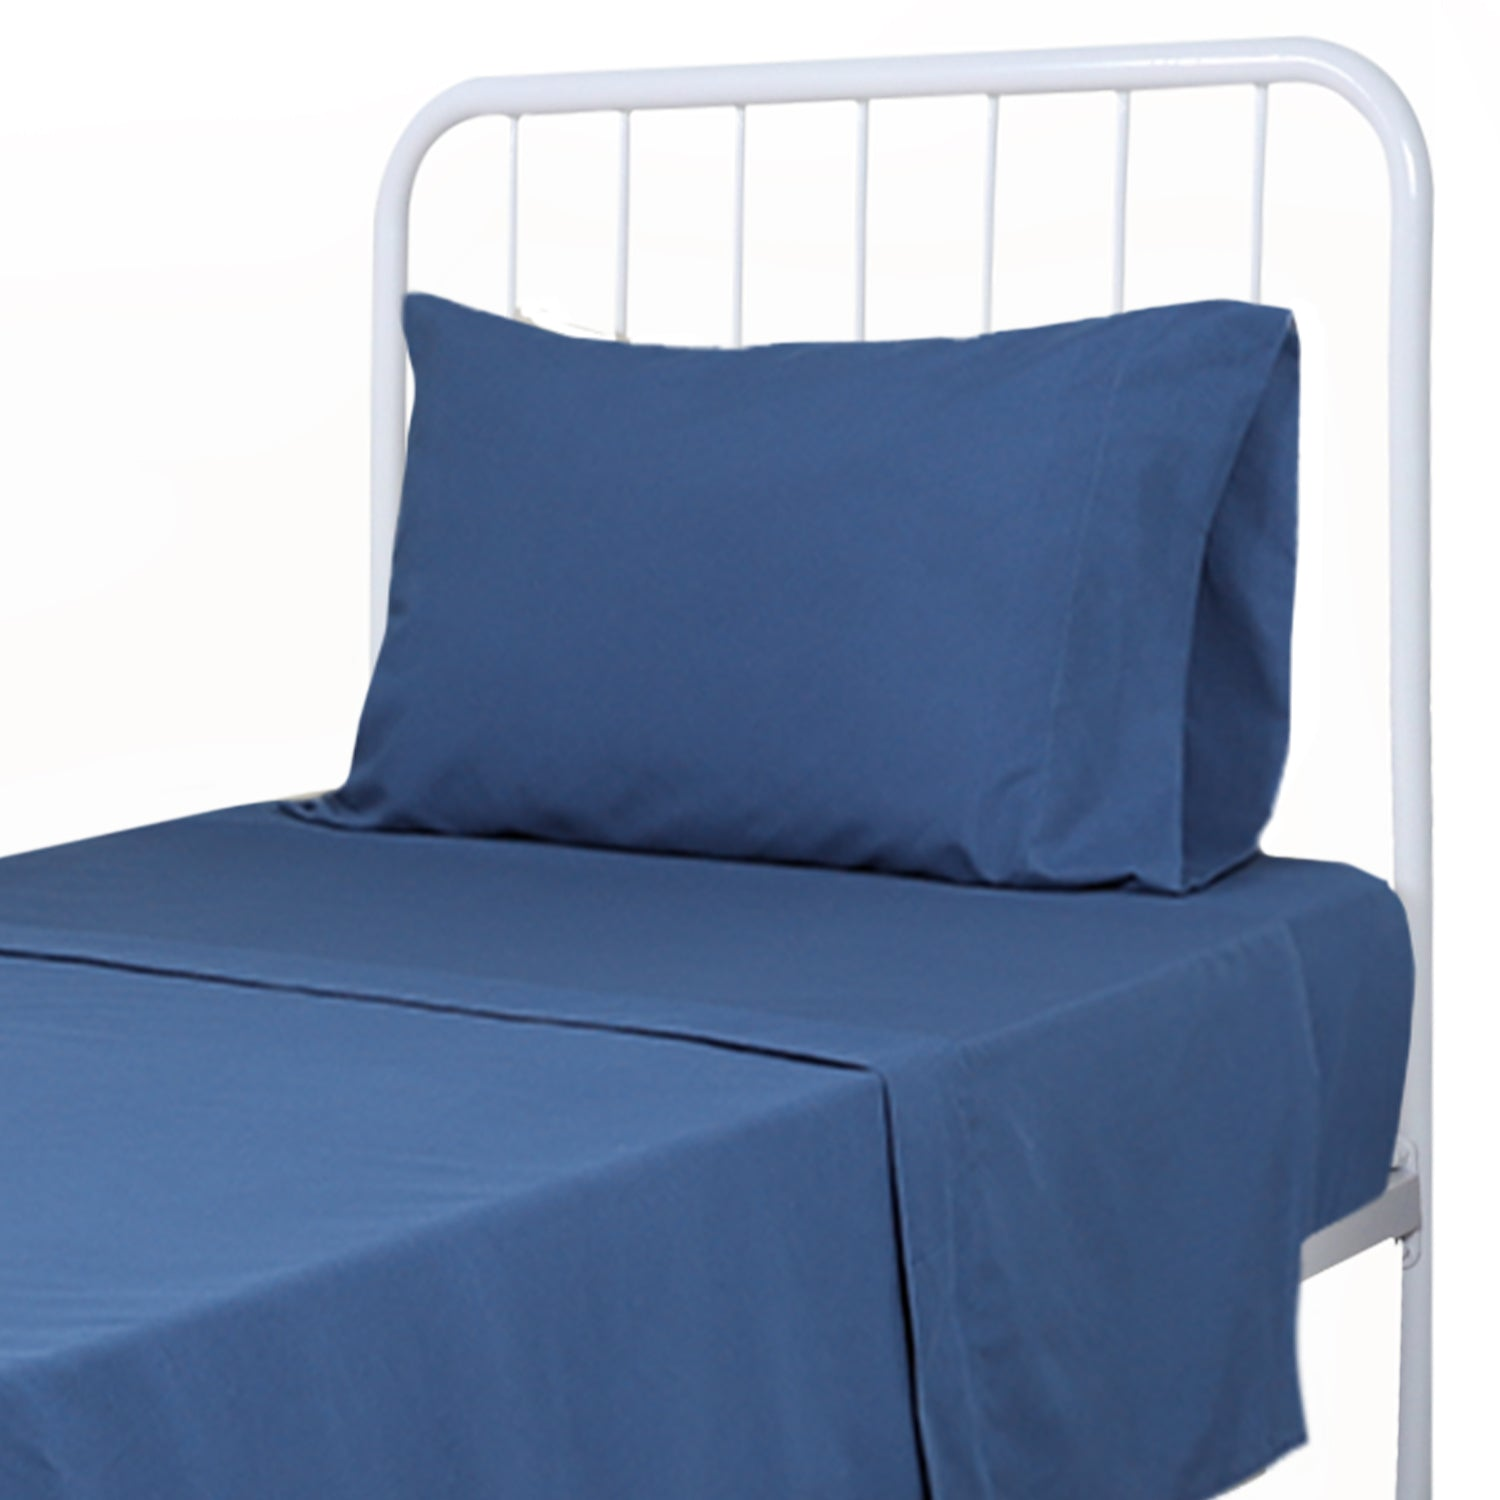 Soft Microfiber Twin Bed Sheets 3-Piece Set - Navy